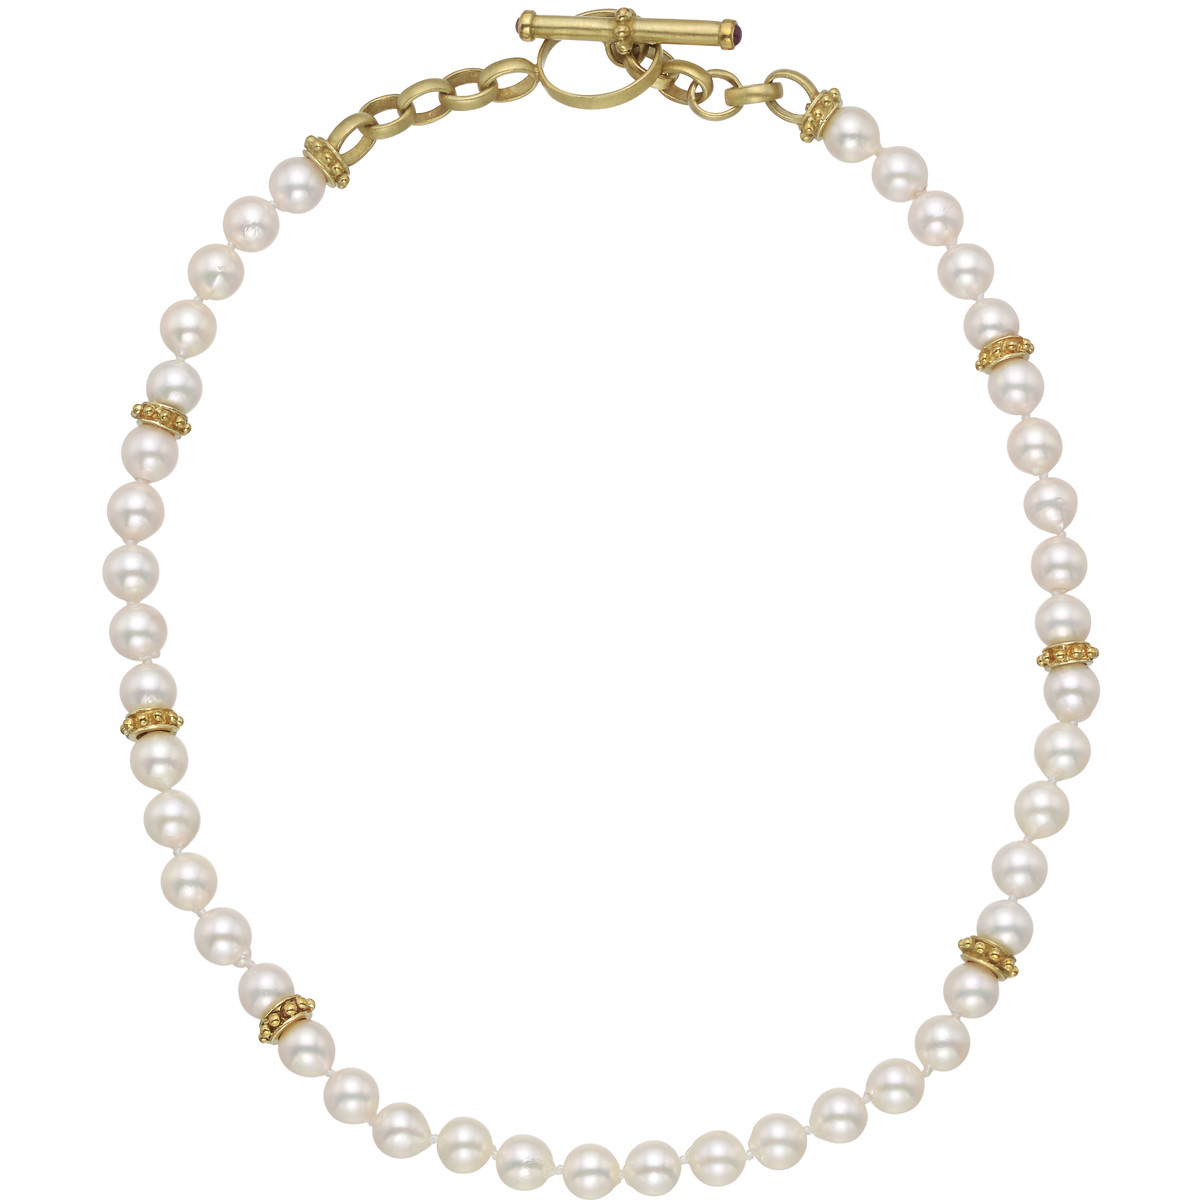 14k Gold & Cultured Pearl Necklace